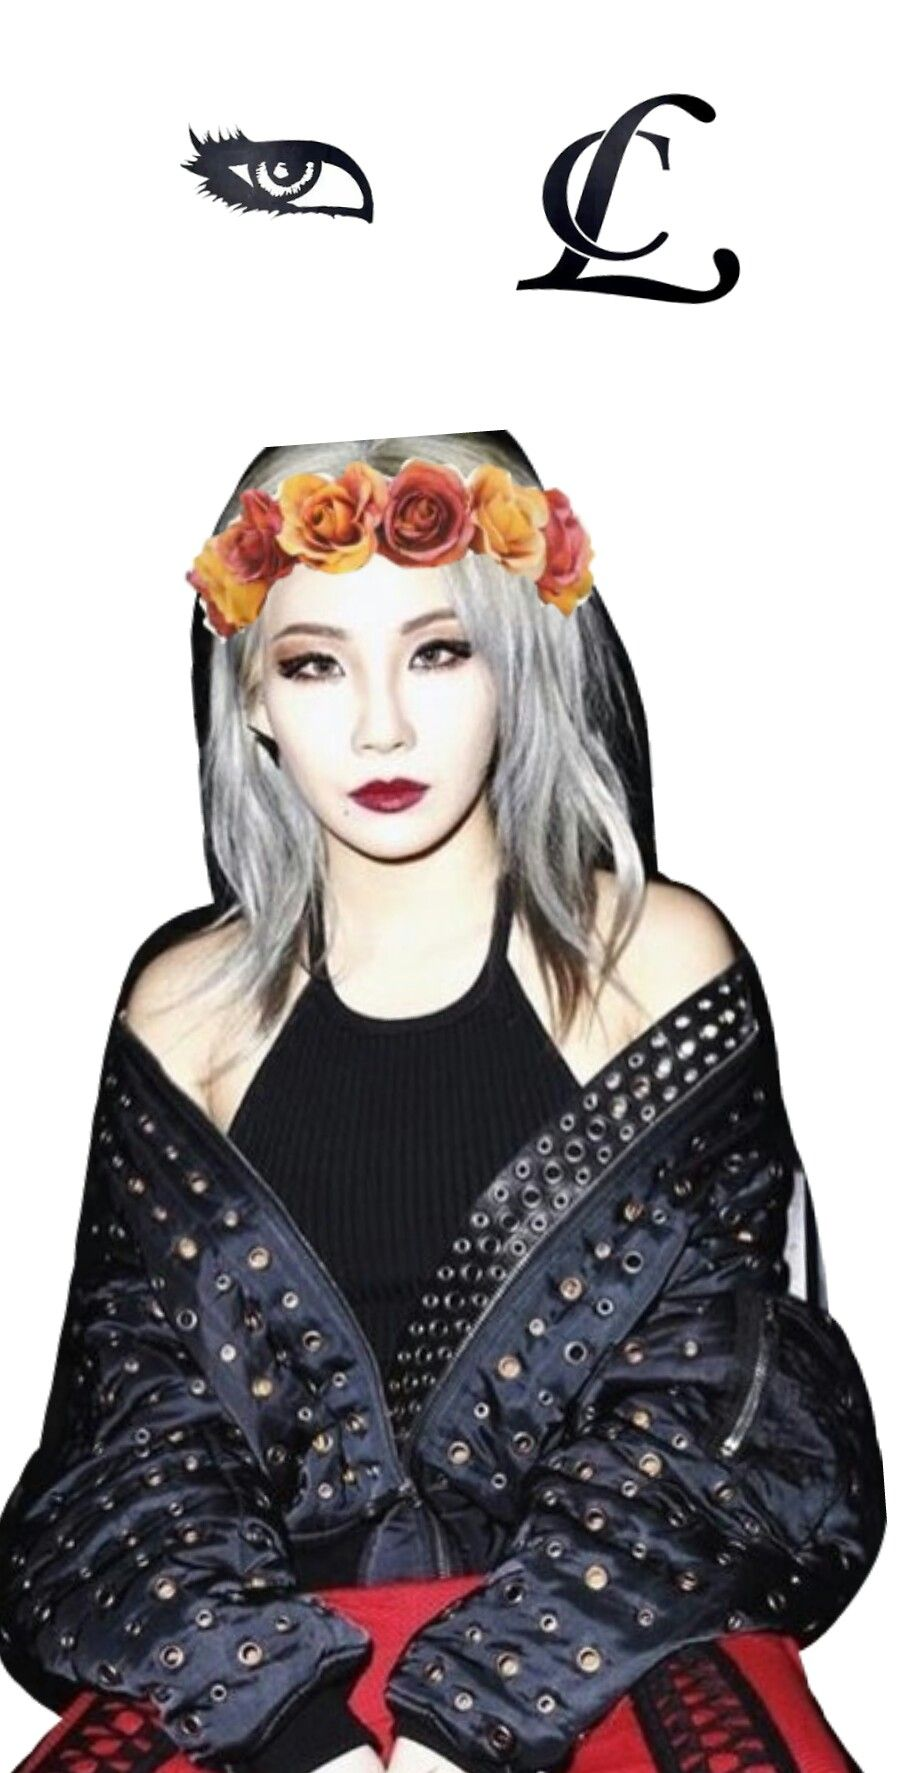 Chaelin Cl 2ne1 Wallpaper Image By Luanna